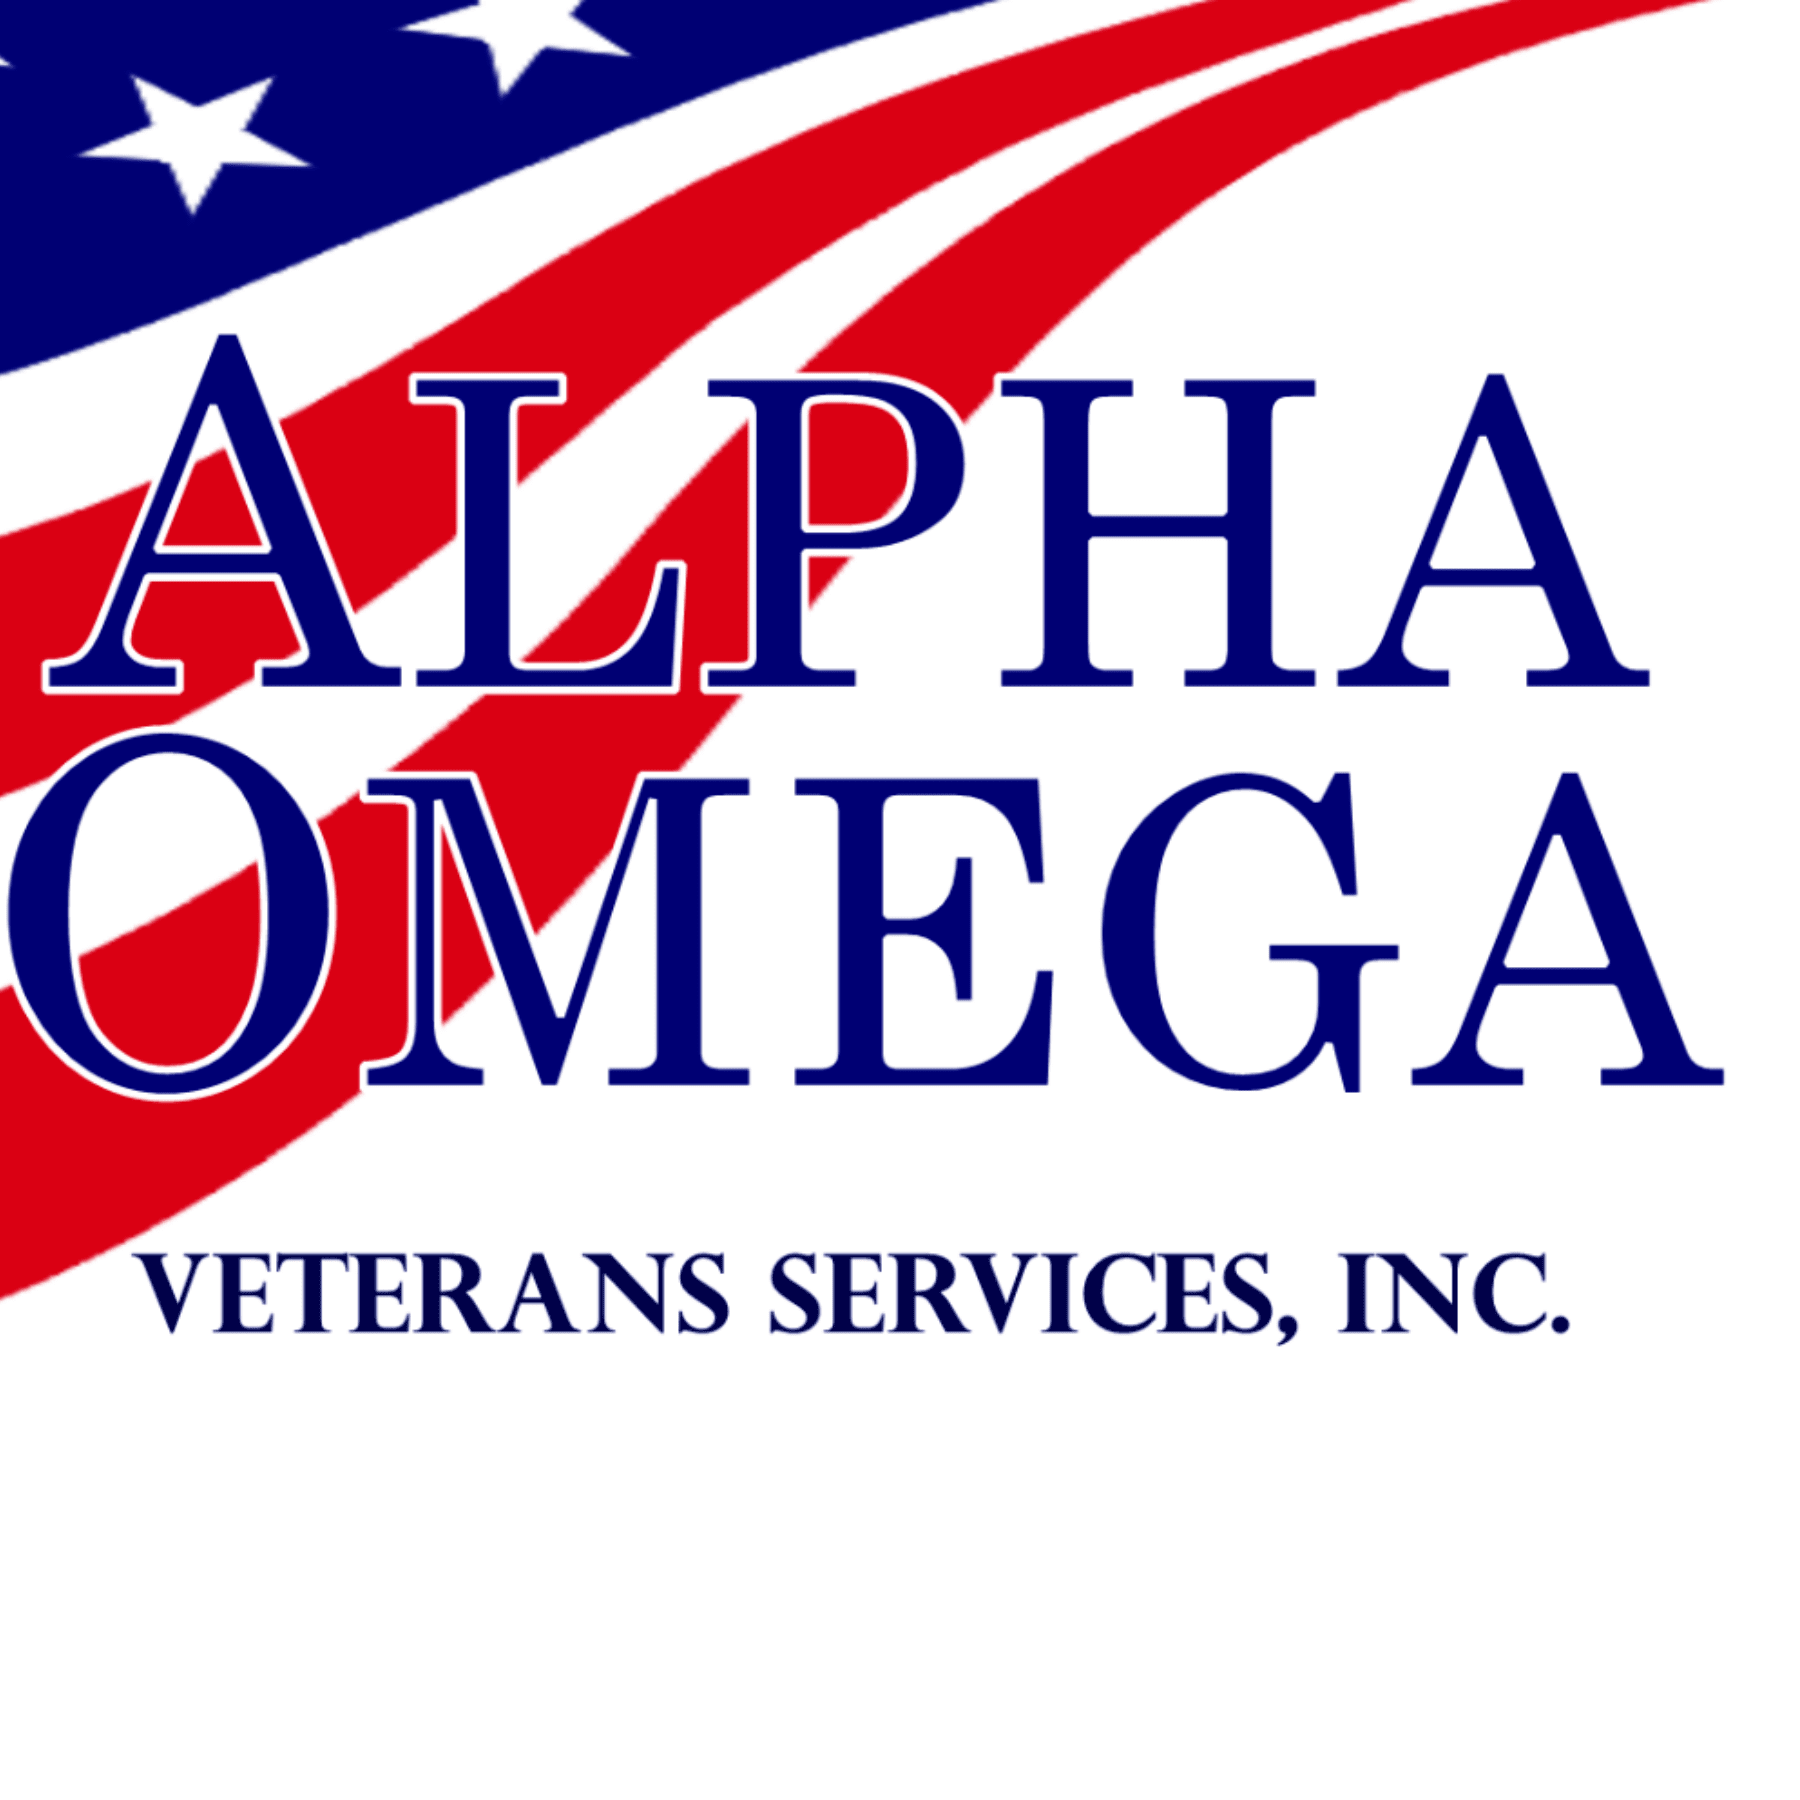 Alpha Omega Veterans Services, Inc.